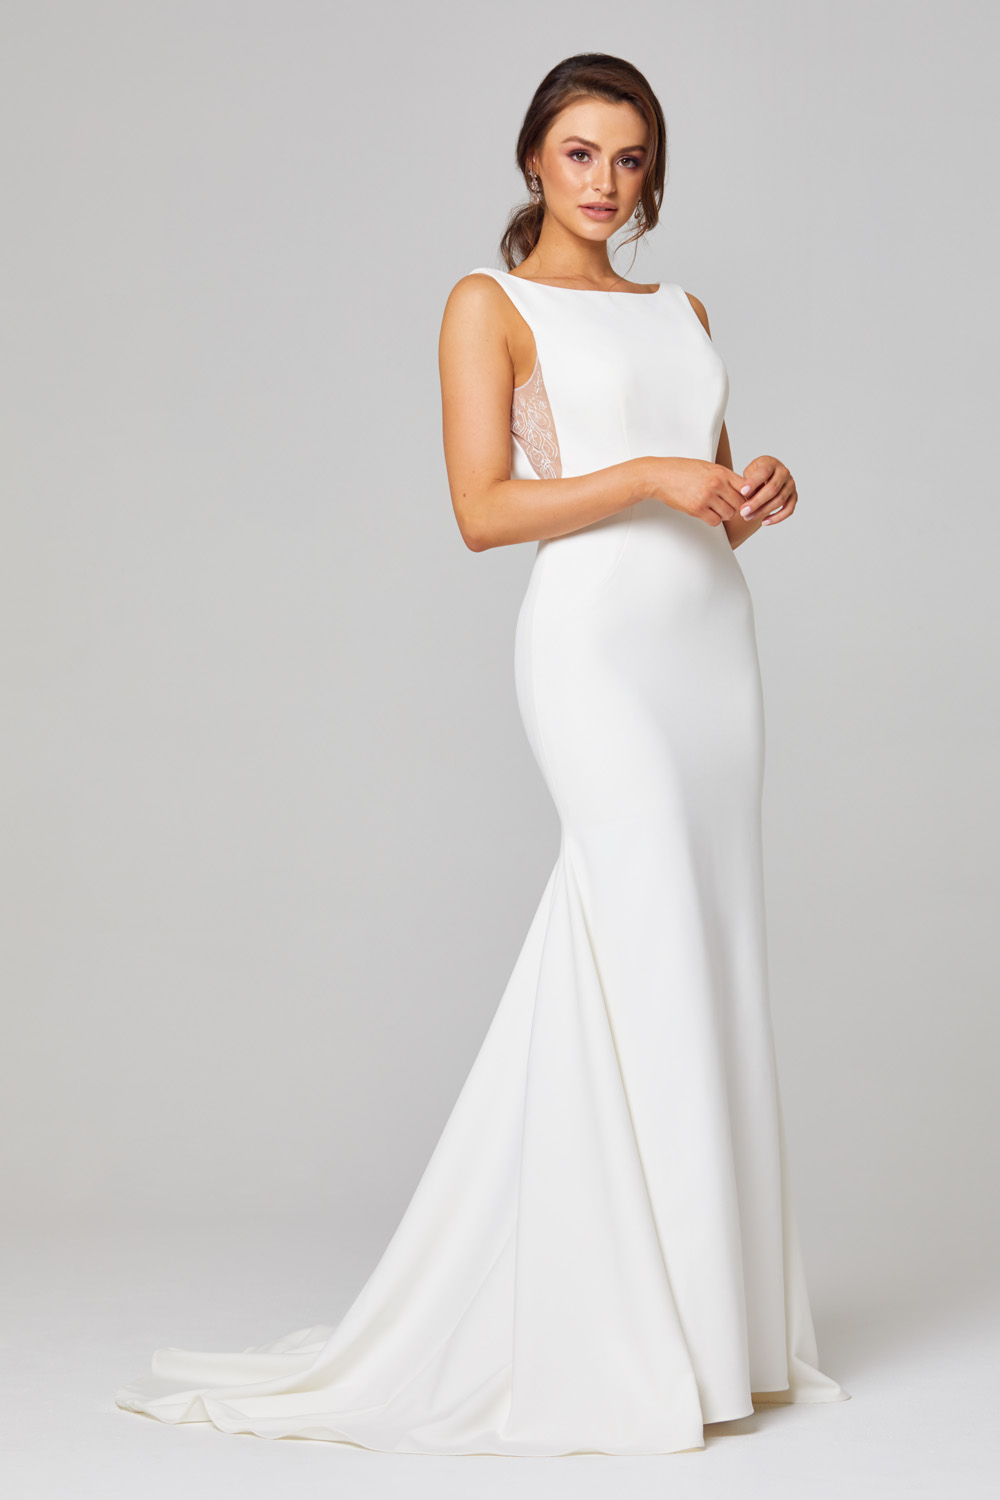 TC301 Jemma wedding dress